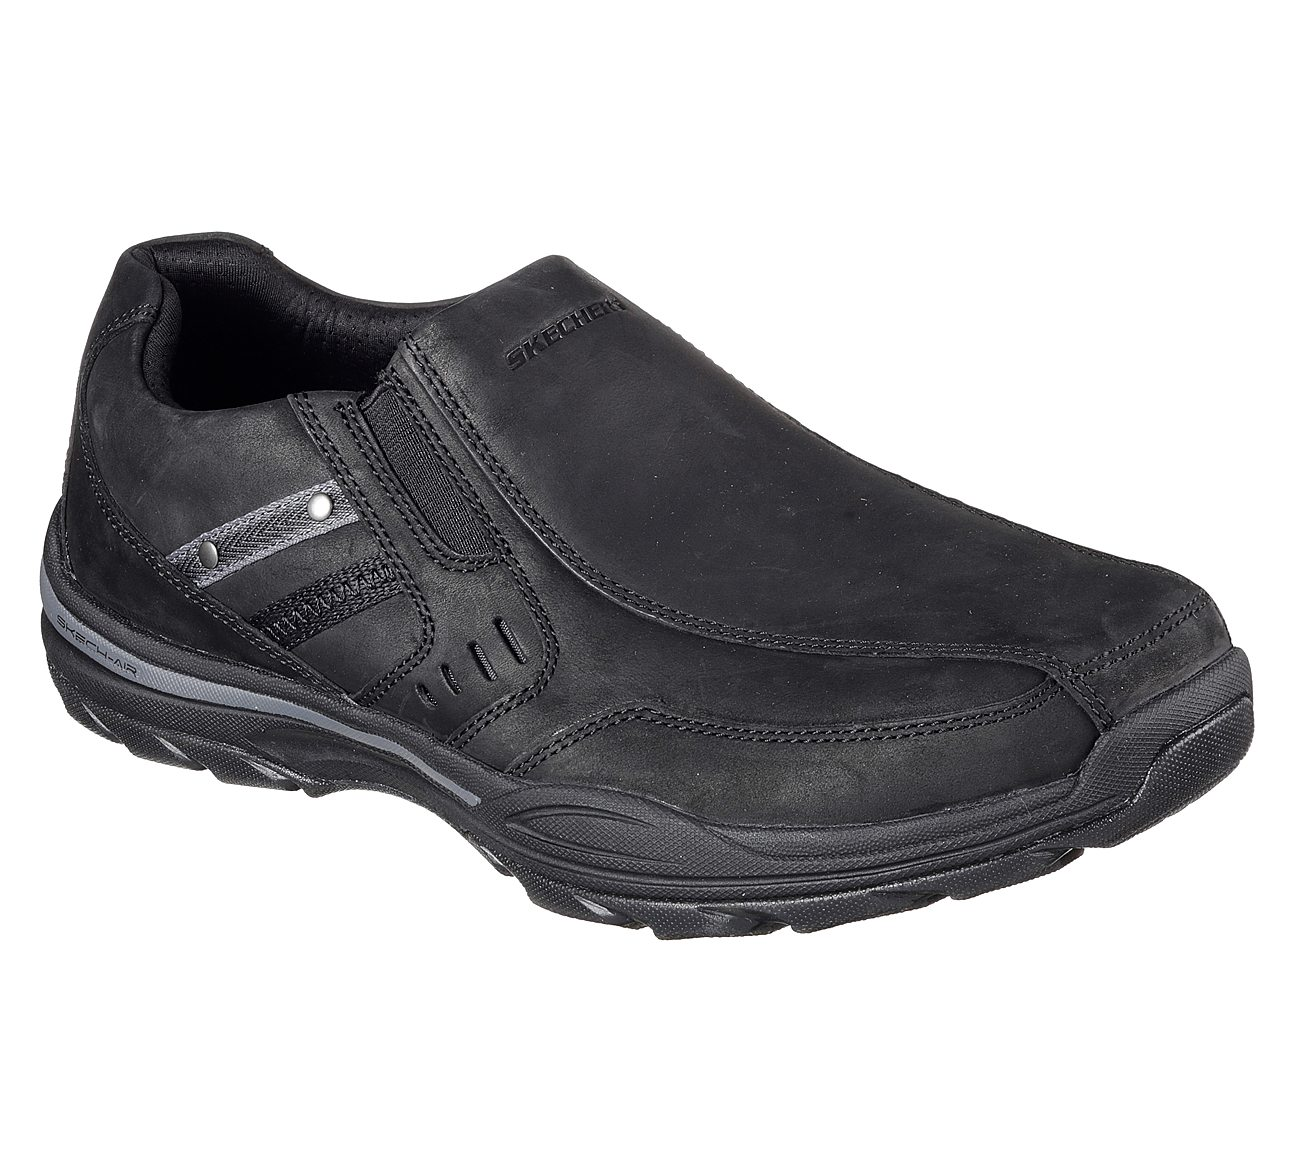 cheap sale clearance Skechers Skech-Air Elment ... Brencen Men's Slip-On Shoes shop offer online OMPzSFwr